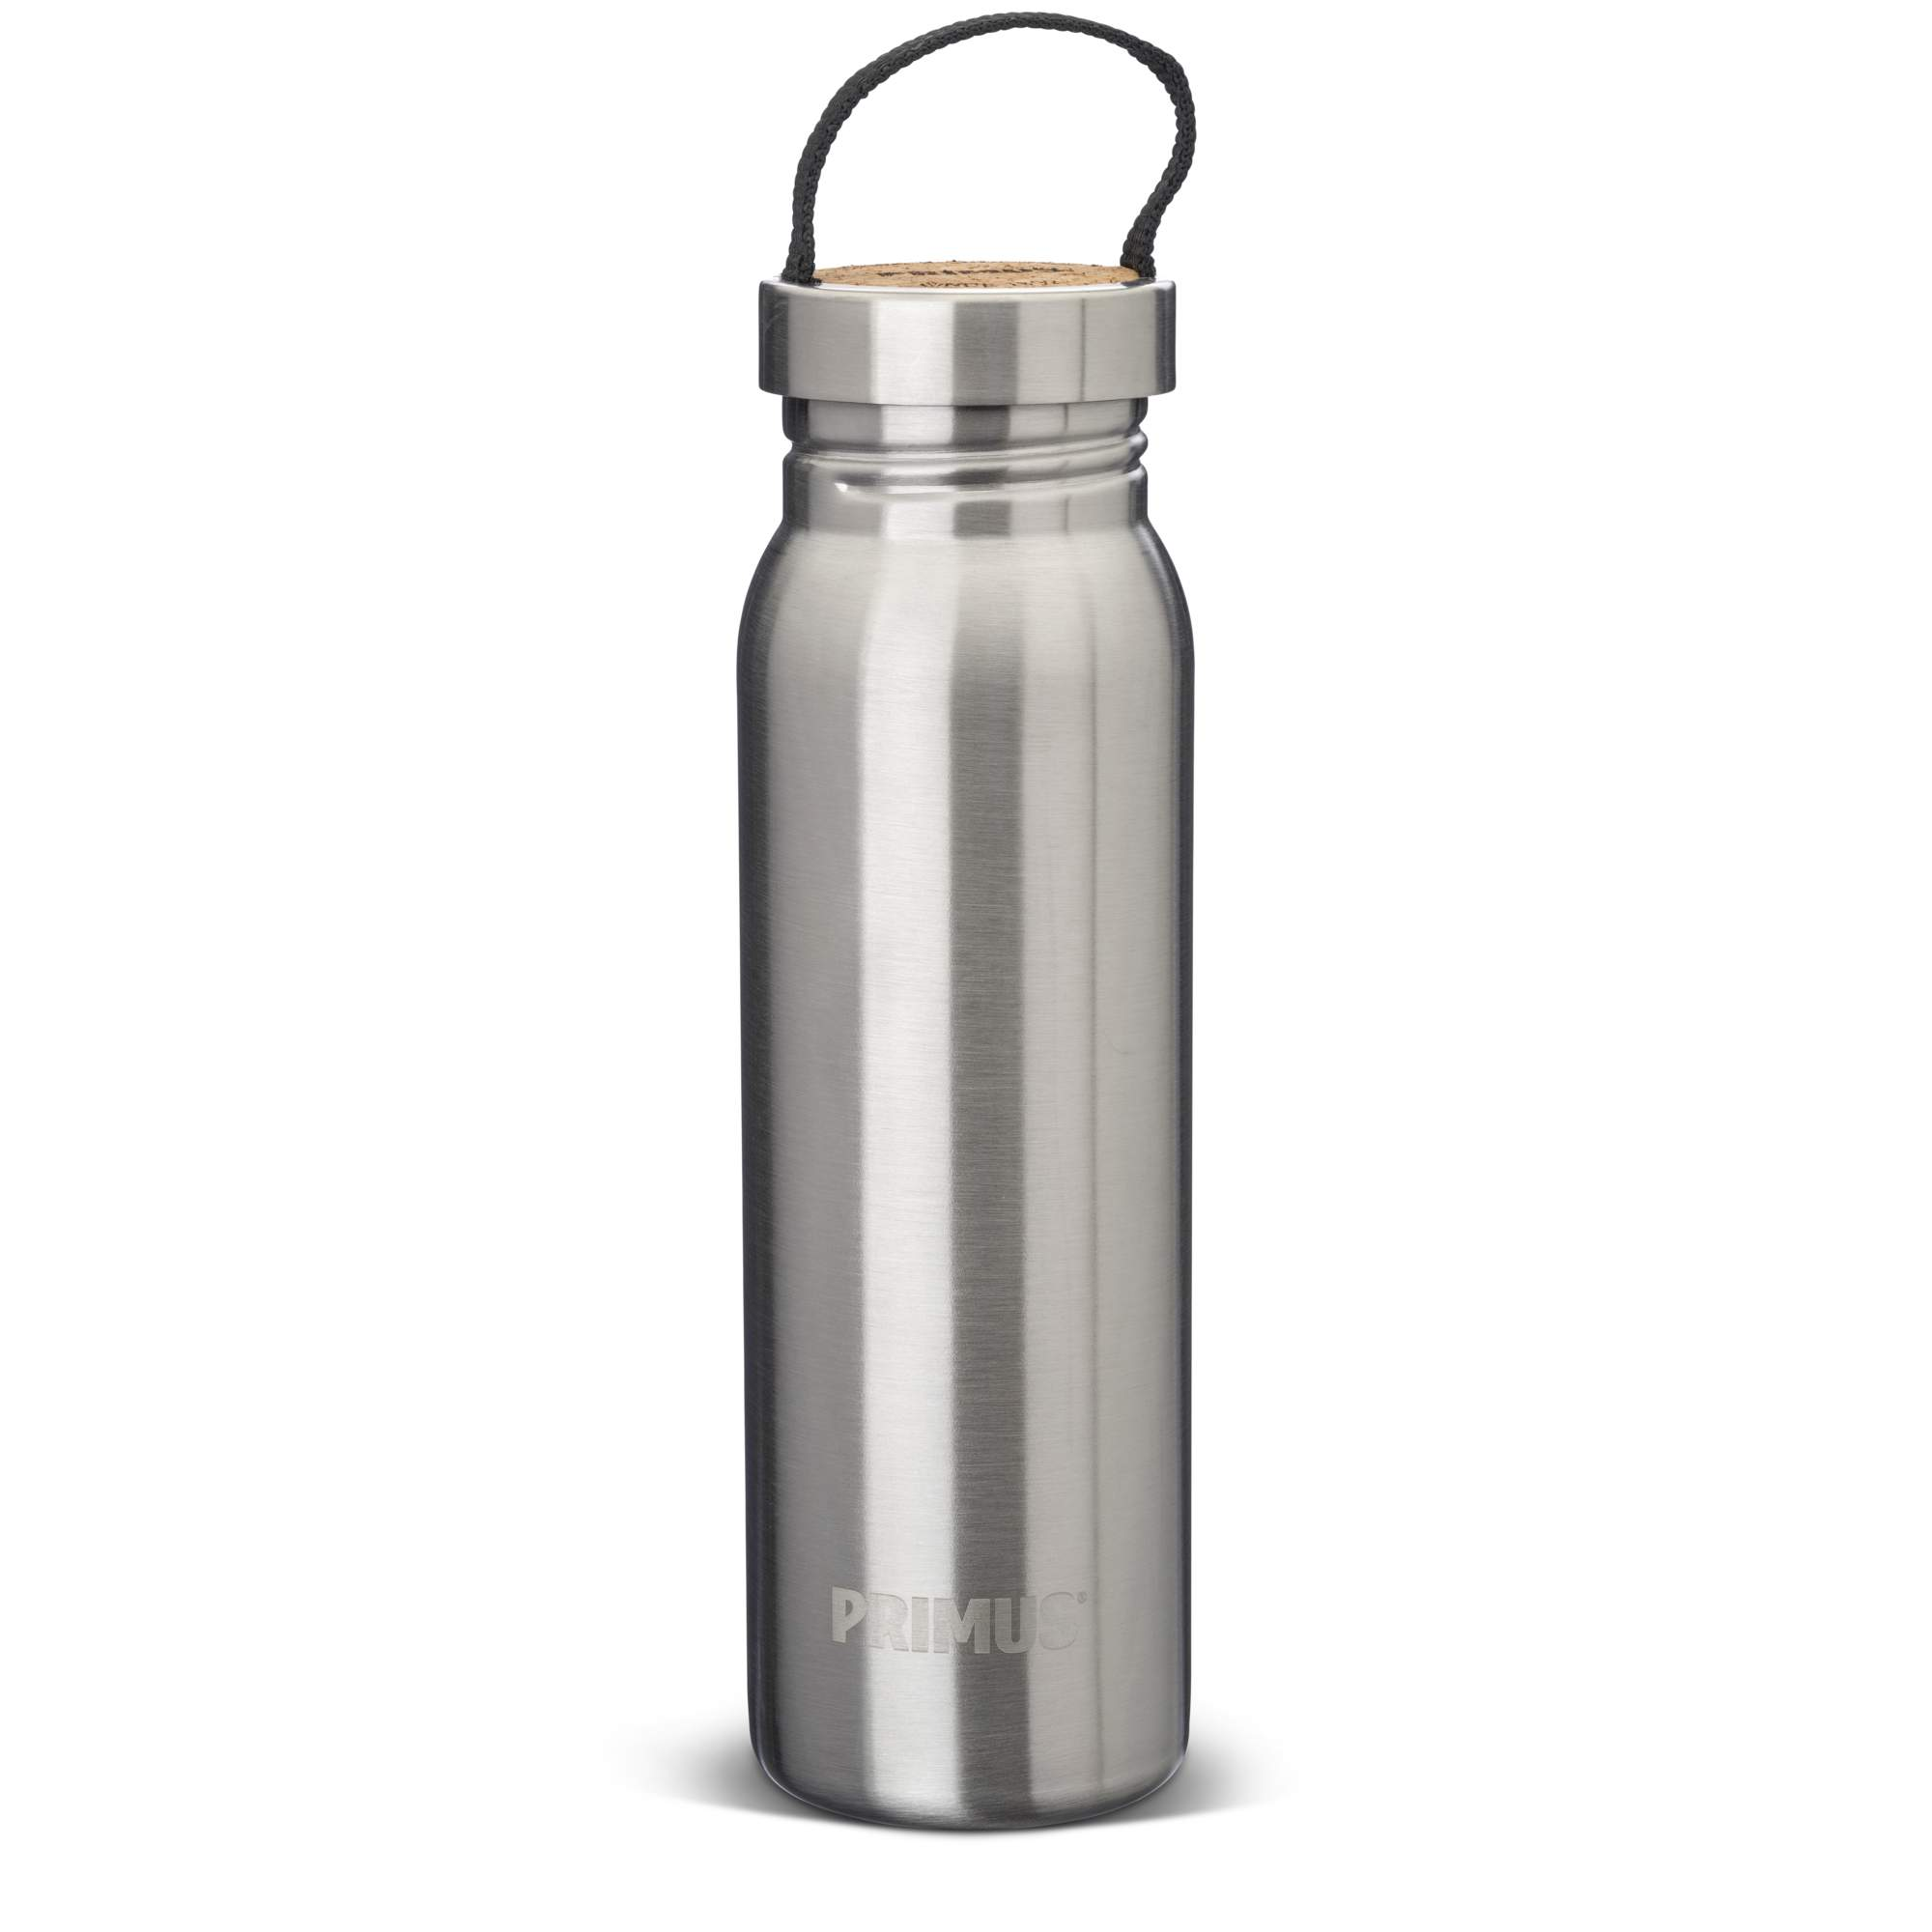 Primus Klunken Bottle 700 ml Steel